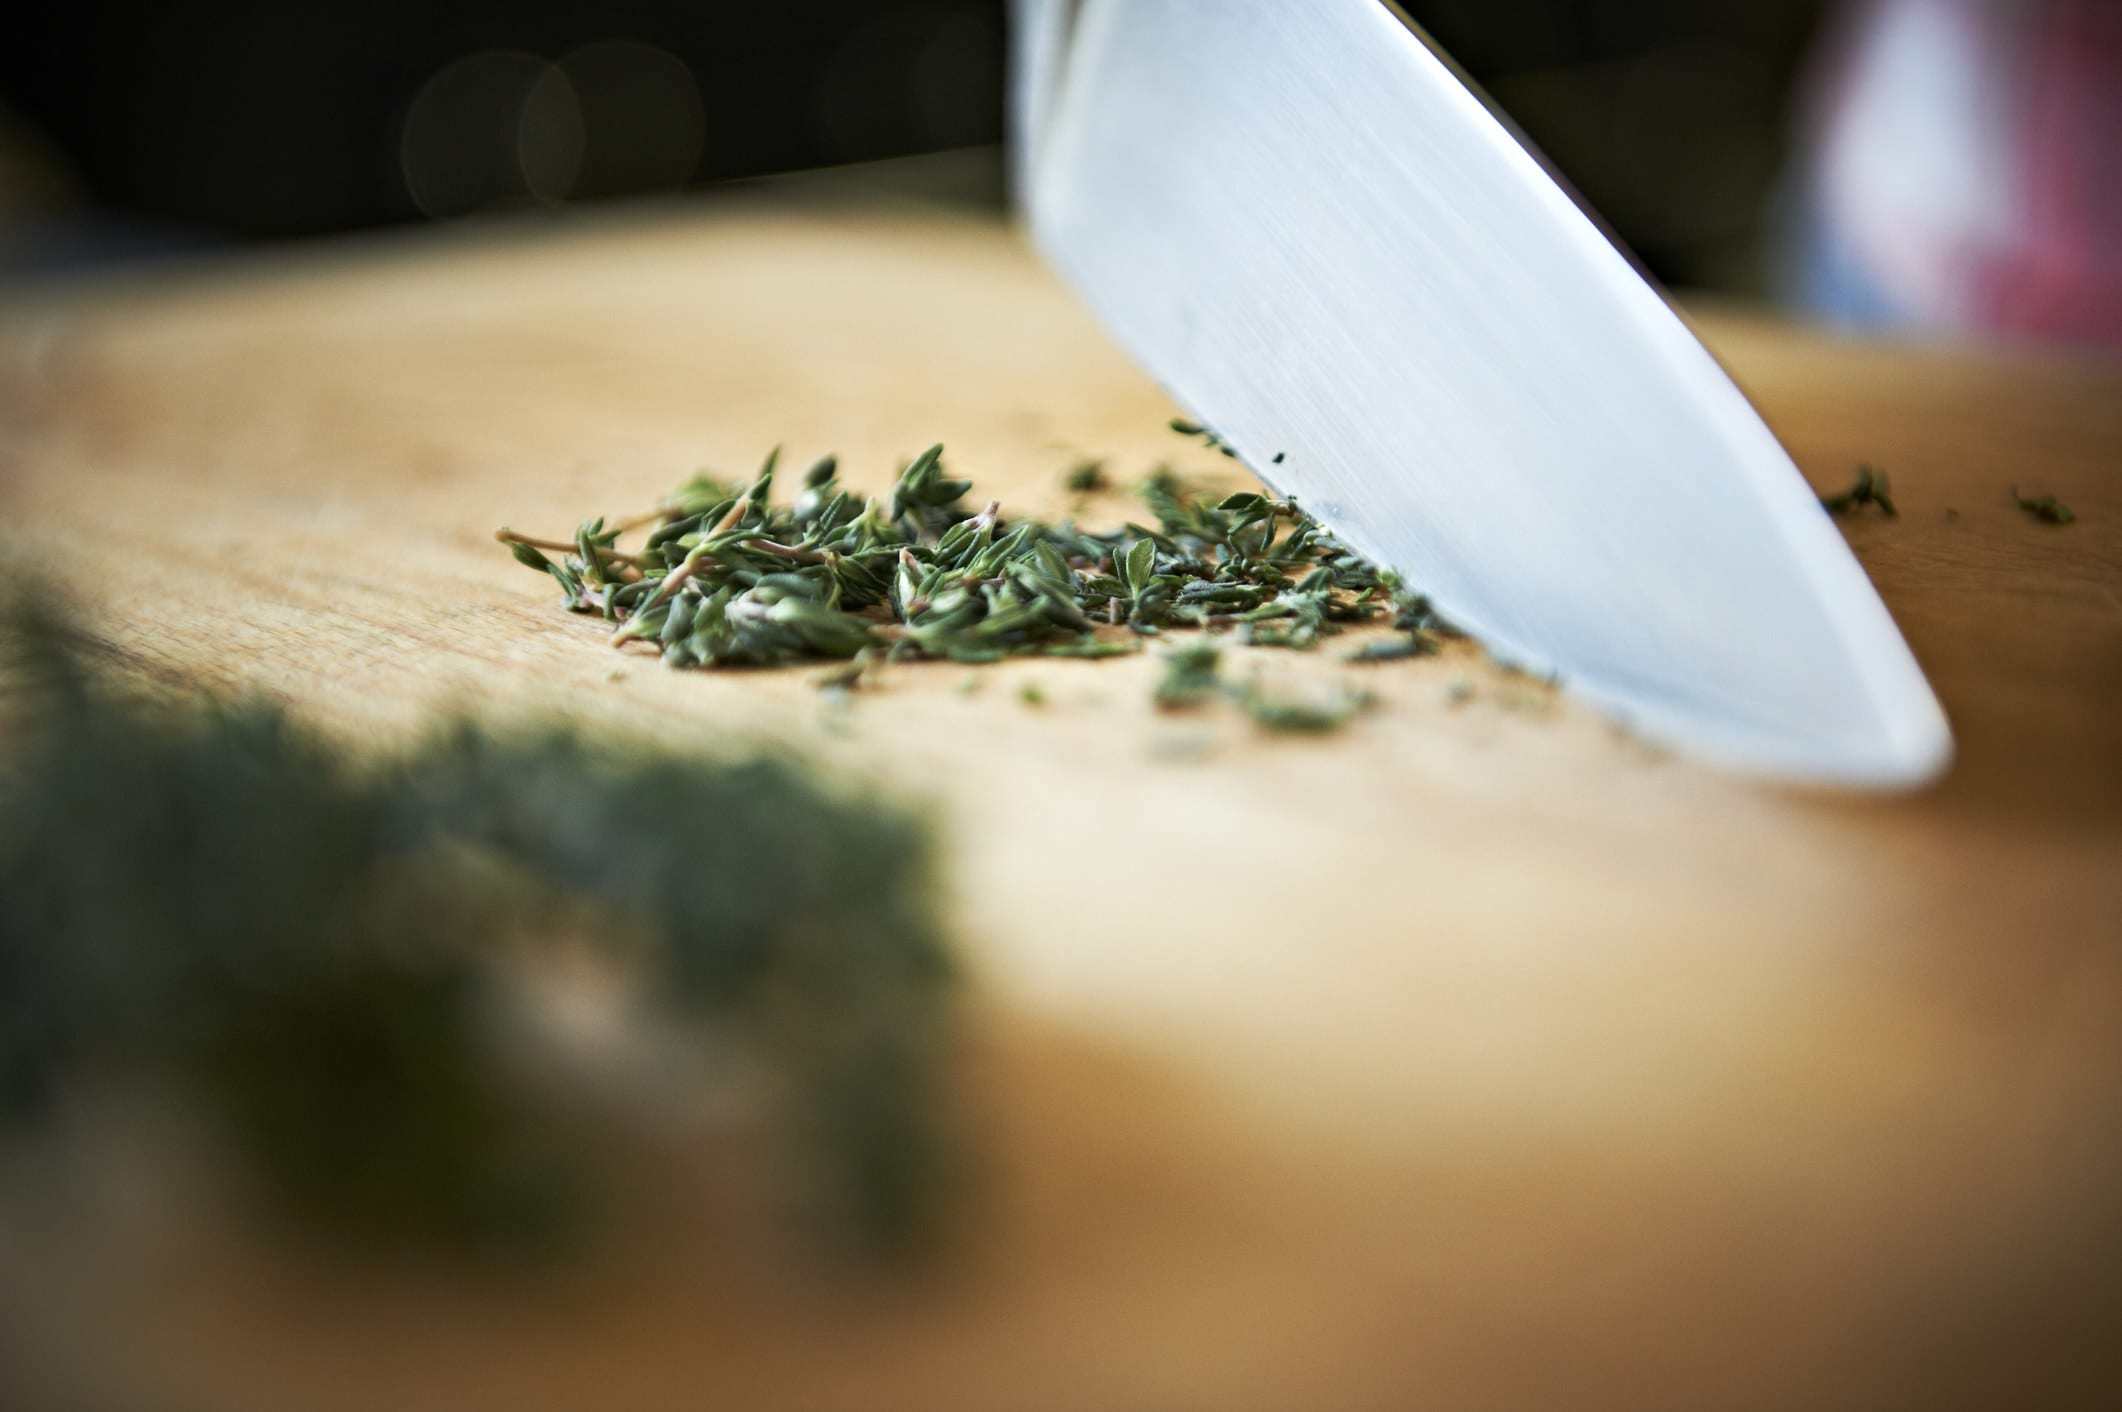 Thinly slicing herbs with a sharp knife.